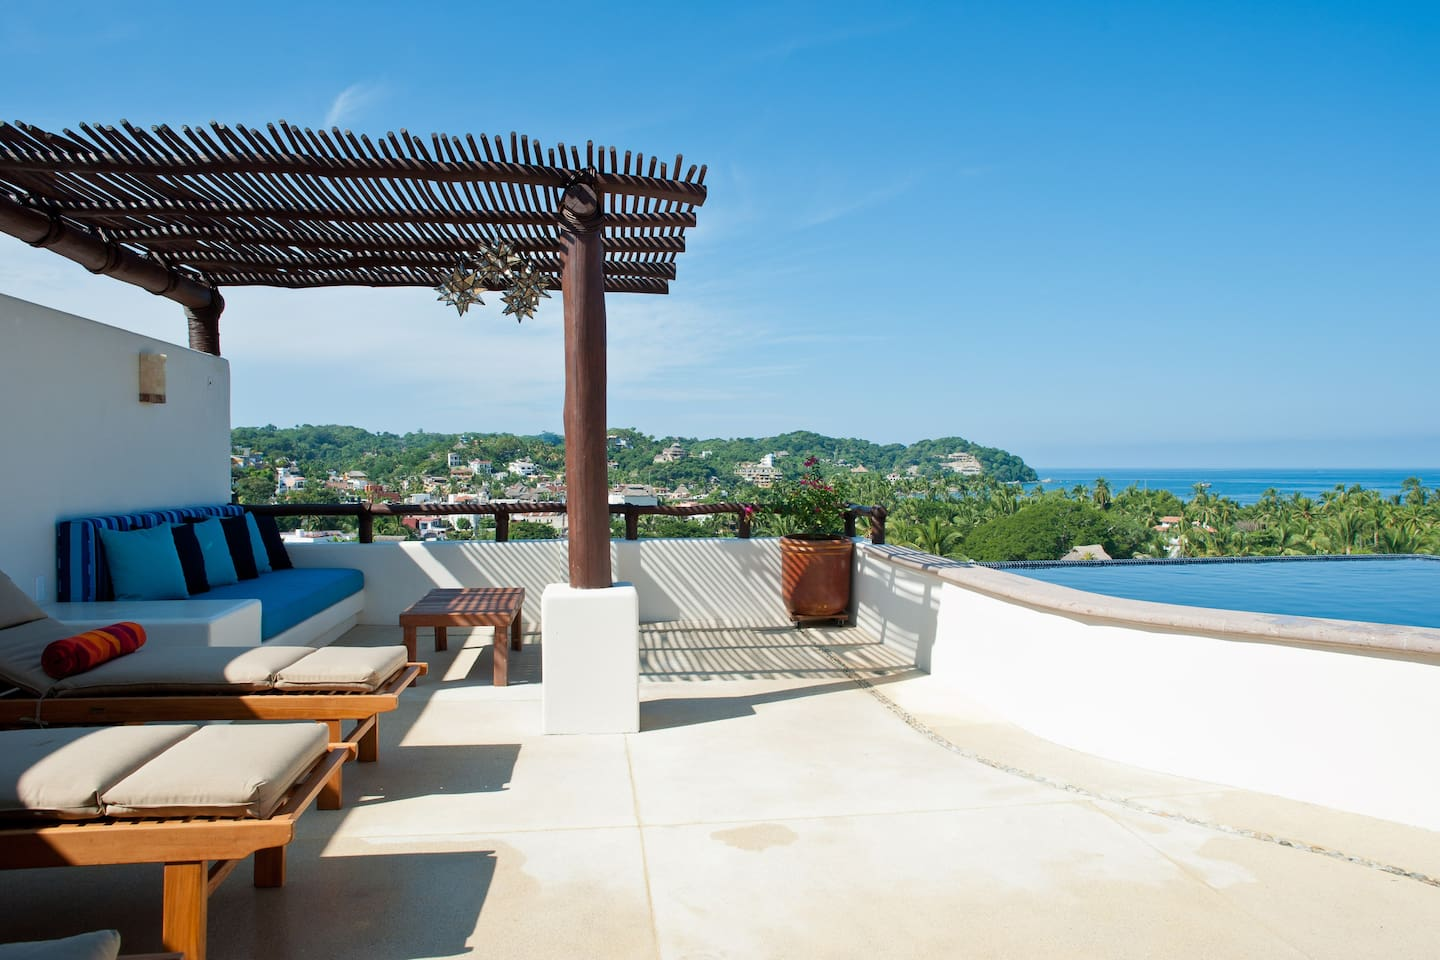 3BR, 3BA with rooftop infinity pool, lounge, palapa and panoramic ocean view